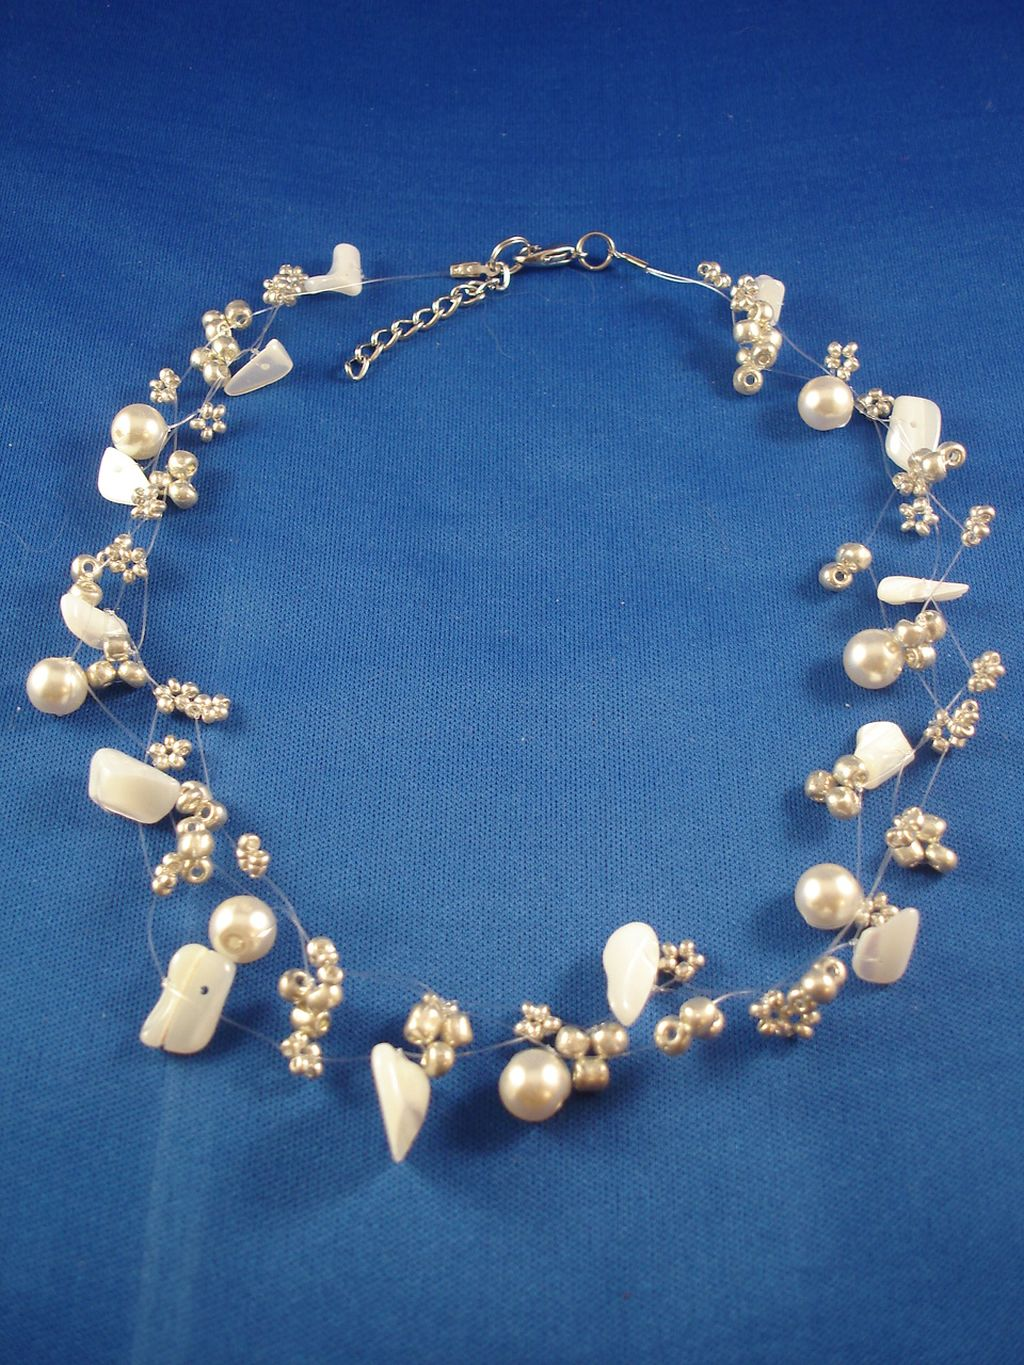 Necklace, Three Layers of Champagne Beads, Artificial Pearls & Genuine Stones, Fashion European Jewelry